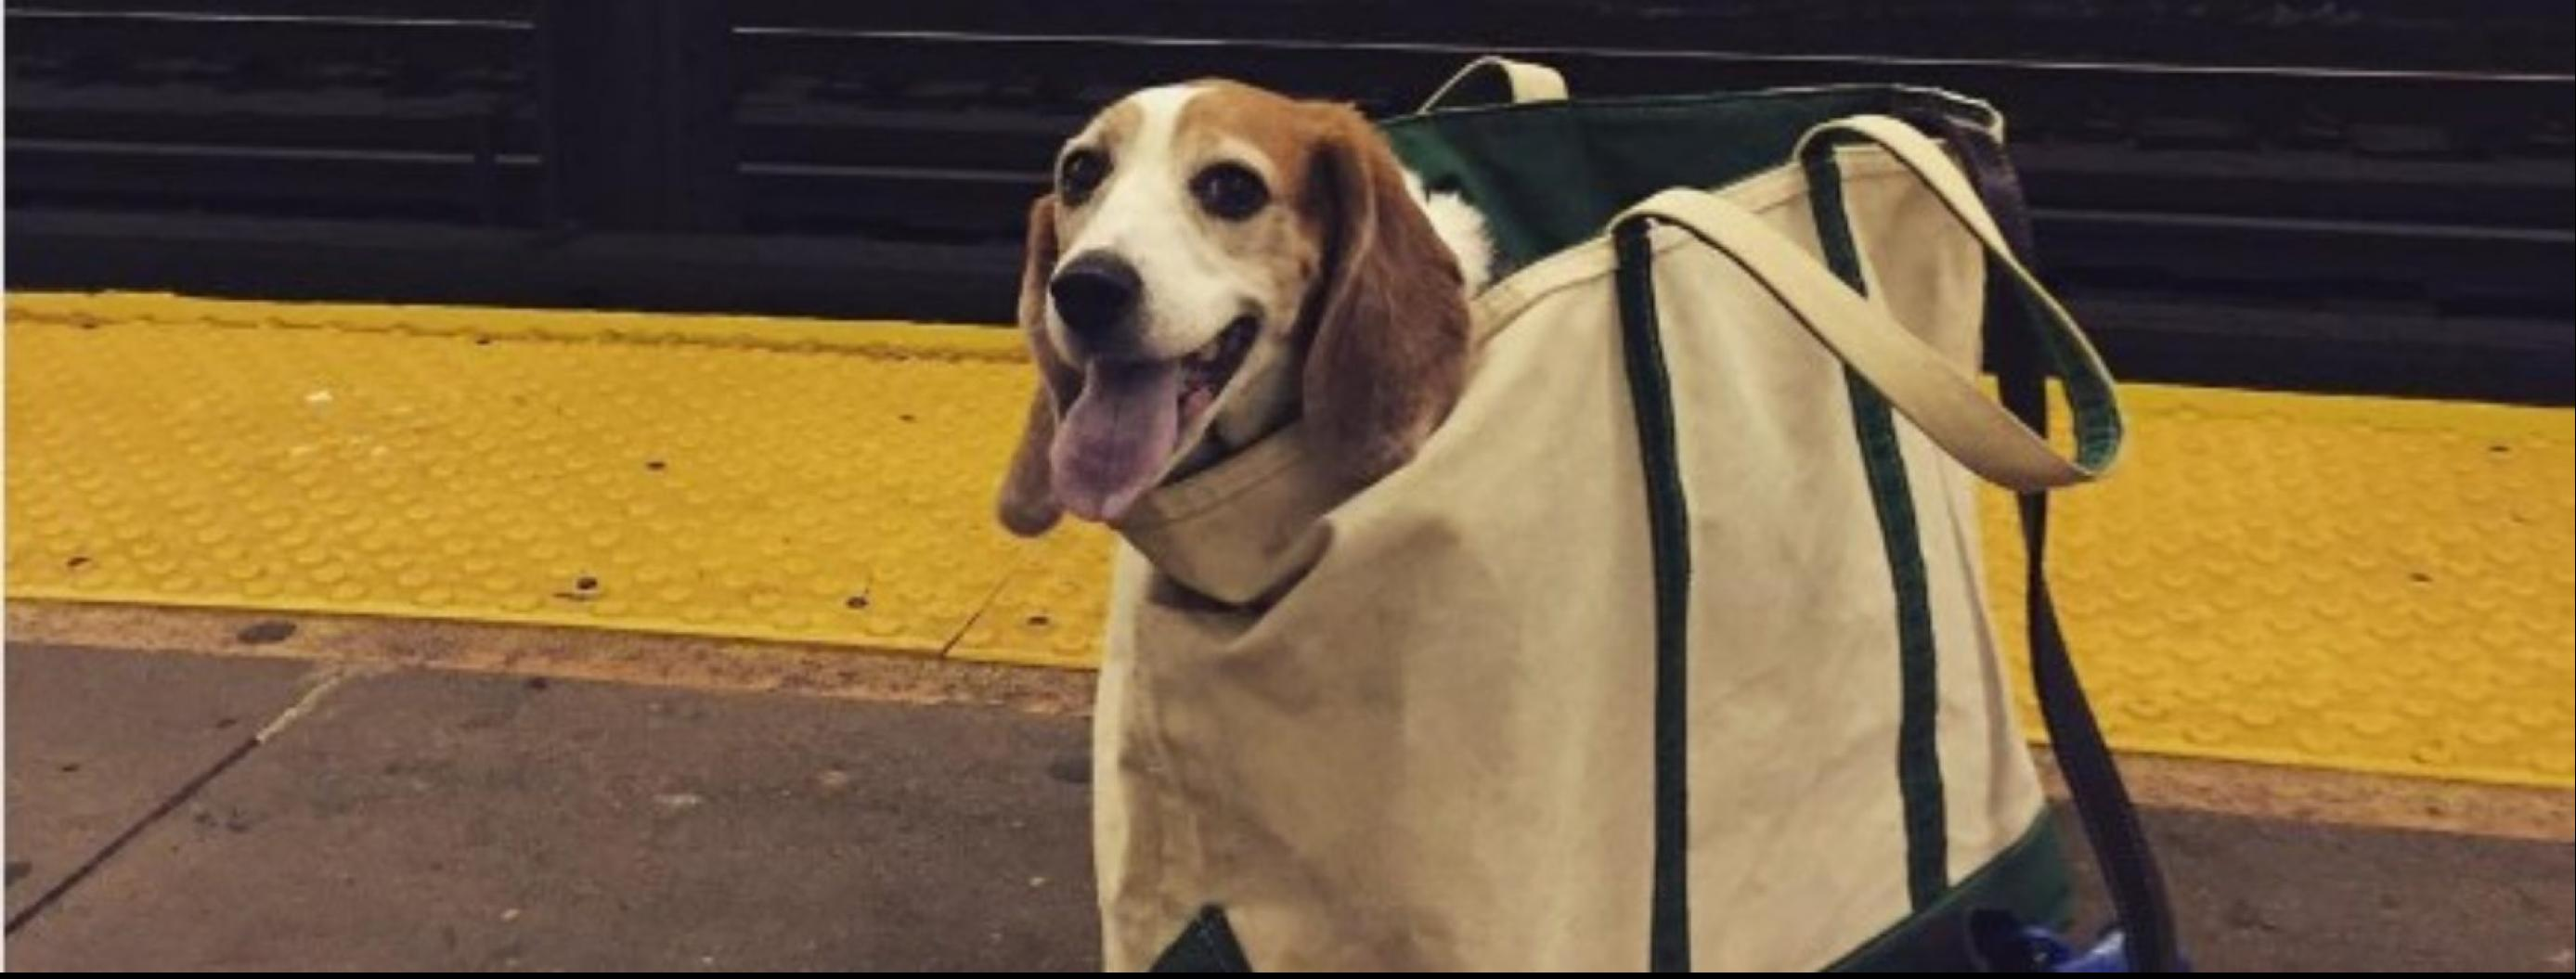 NYC Subway Bans Dogs Unless they Fit Into Bags and Here's the Solution